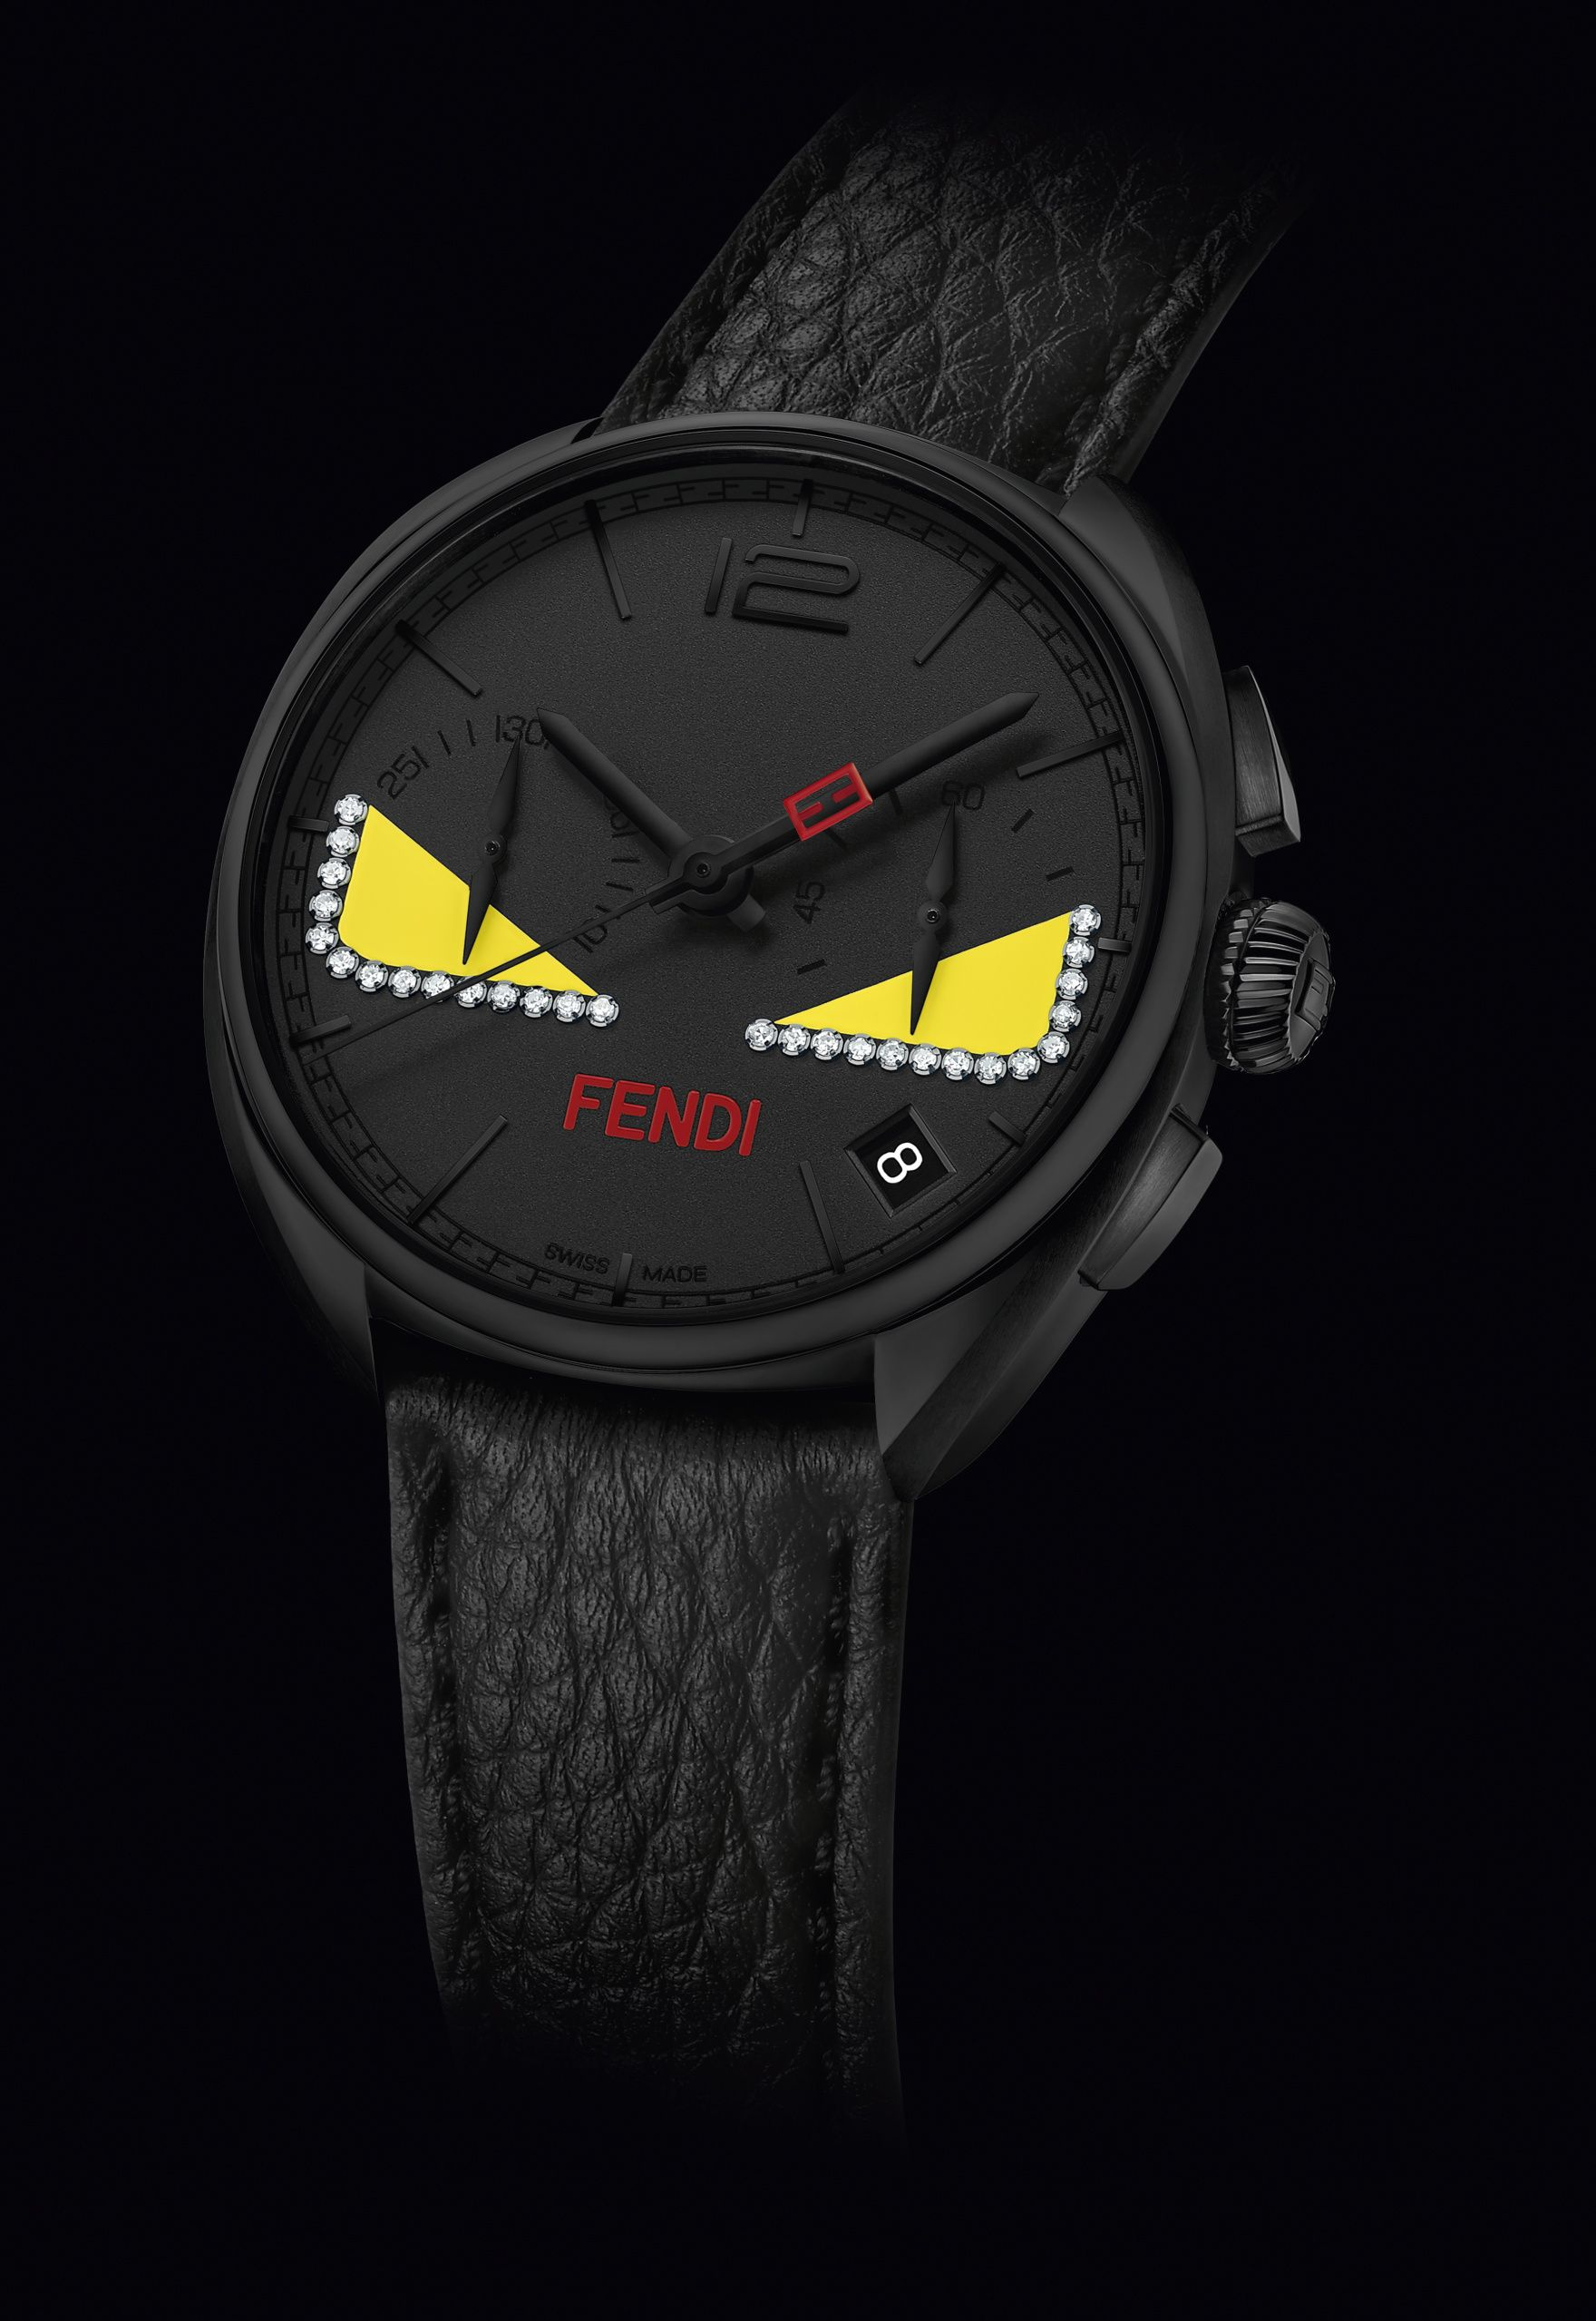 b2c2145ab62d The Fendi Momento Bugs watch which debuted at the Men s Fall Winter 2015-16  runway